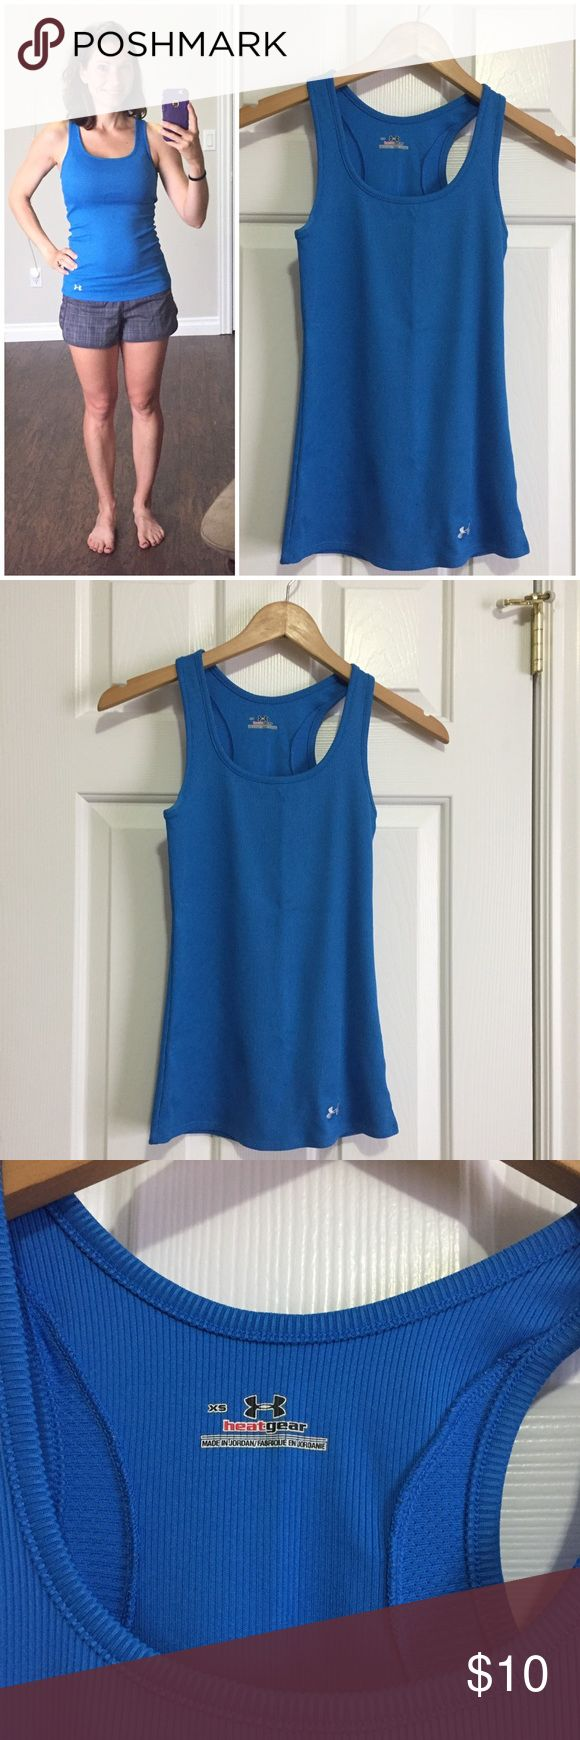 """Under Armor varsity tank Beautiful cobalt blue Under Armor running or workout tank. Stretchy wicking material keeps you dry as you sweat, perfect for high intensity activities like running or just wearing to the zoo on a hot day! Mesh inserts along the back for additional cooling. Racerback style. I LOVE these tanks and own like 15 of them, I am only selling this one because it is XS and rides up on me slightly (Small fits me perfectly). Fitted style, length is 24"""". One small mark near logo…"""